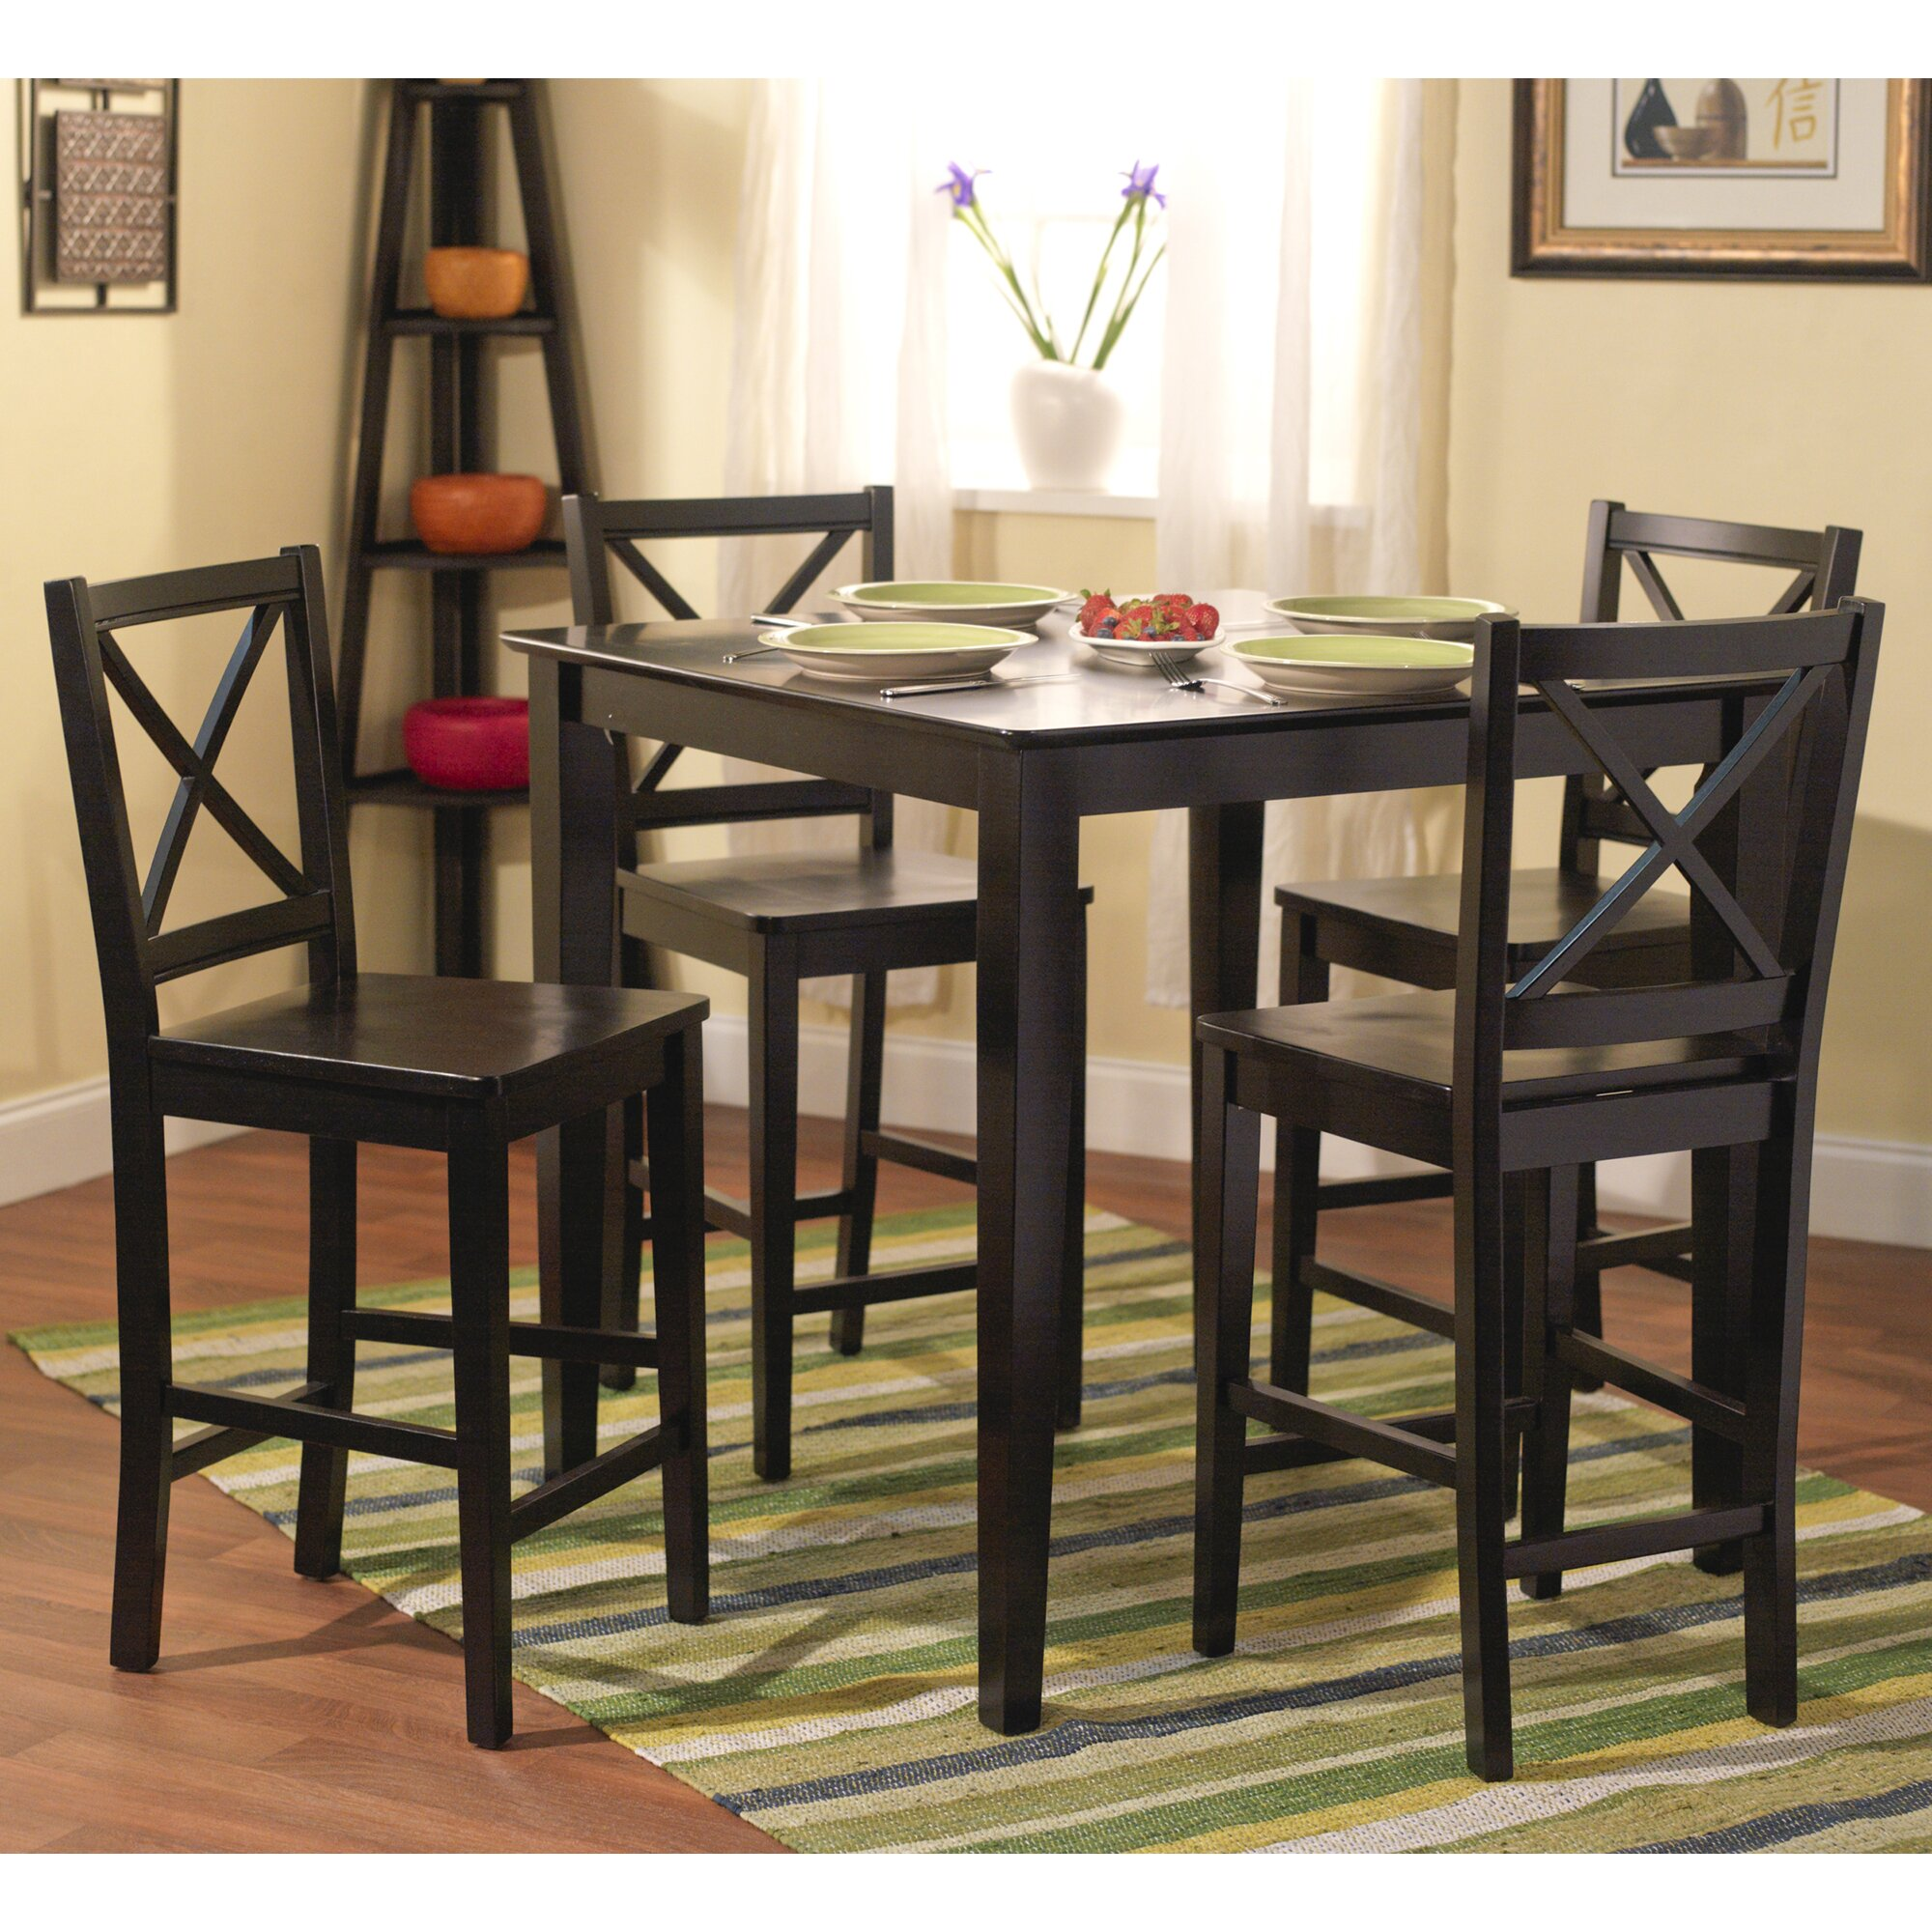 Breakwater Bay Worthington 5 Piece Counter Height Dining